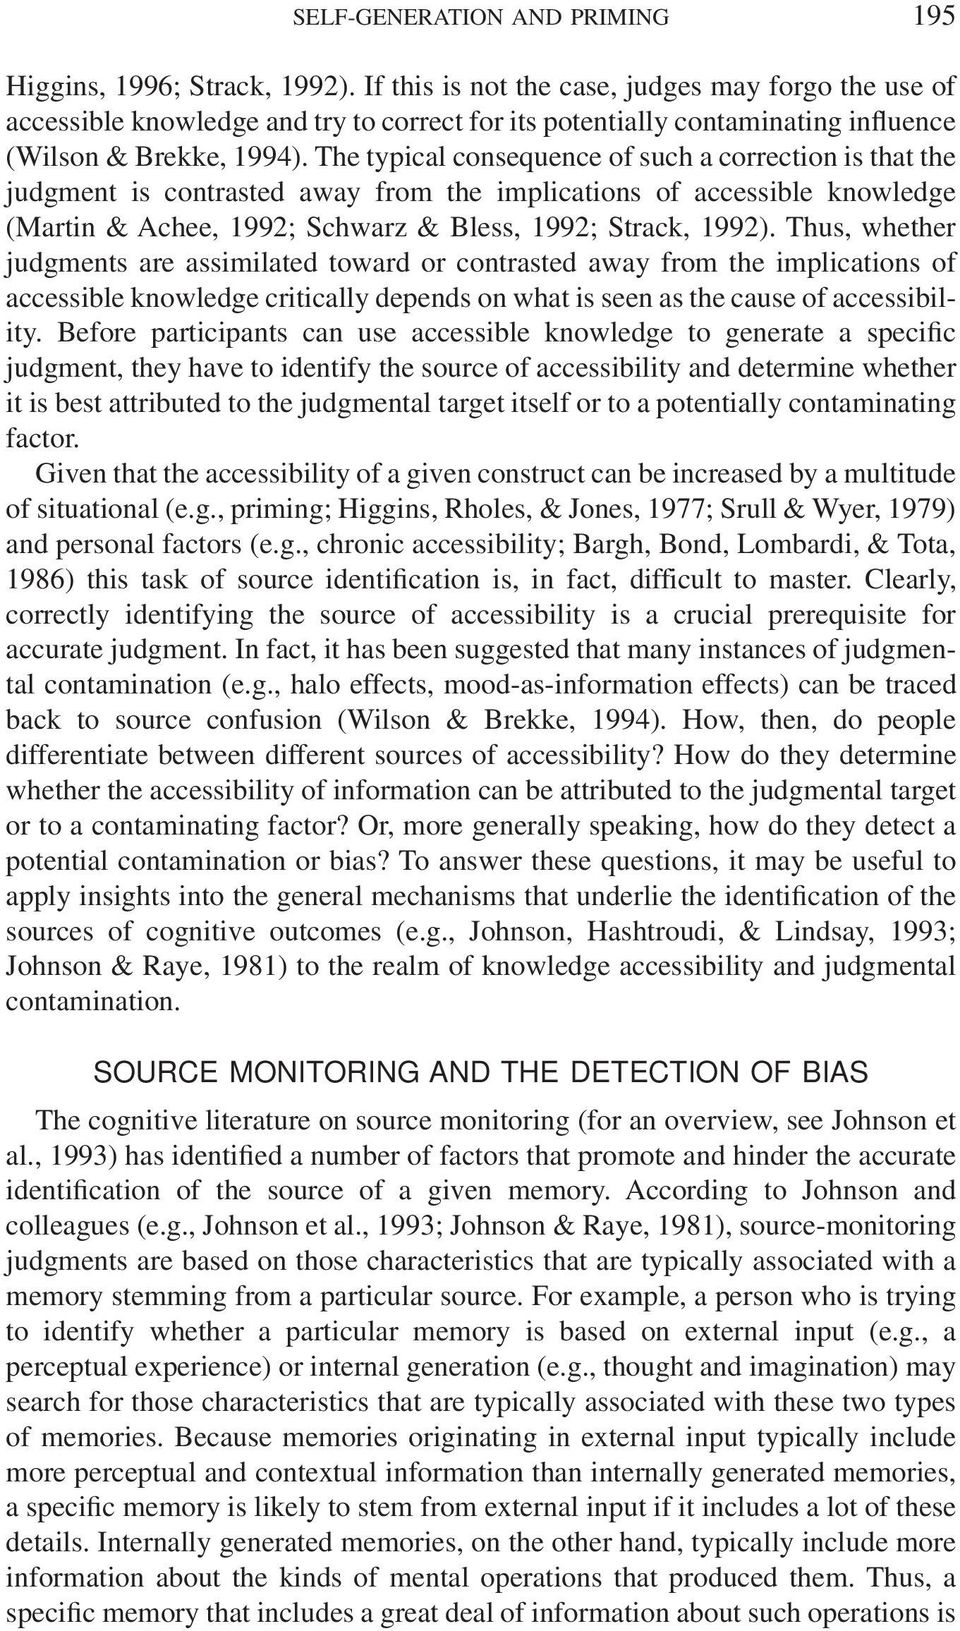 The typical consequence of such a correction is that the judgment is contrasted away from the implications of accessible knowledge (Martin & Achee, 1992; Schwarz & Bless, 1992; Strack, 1992).